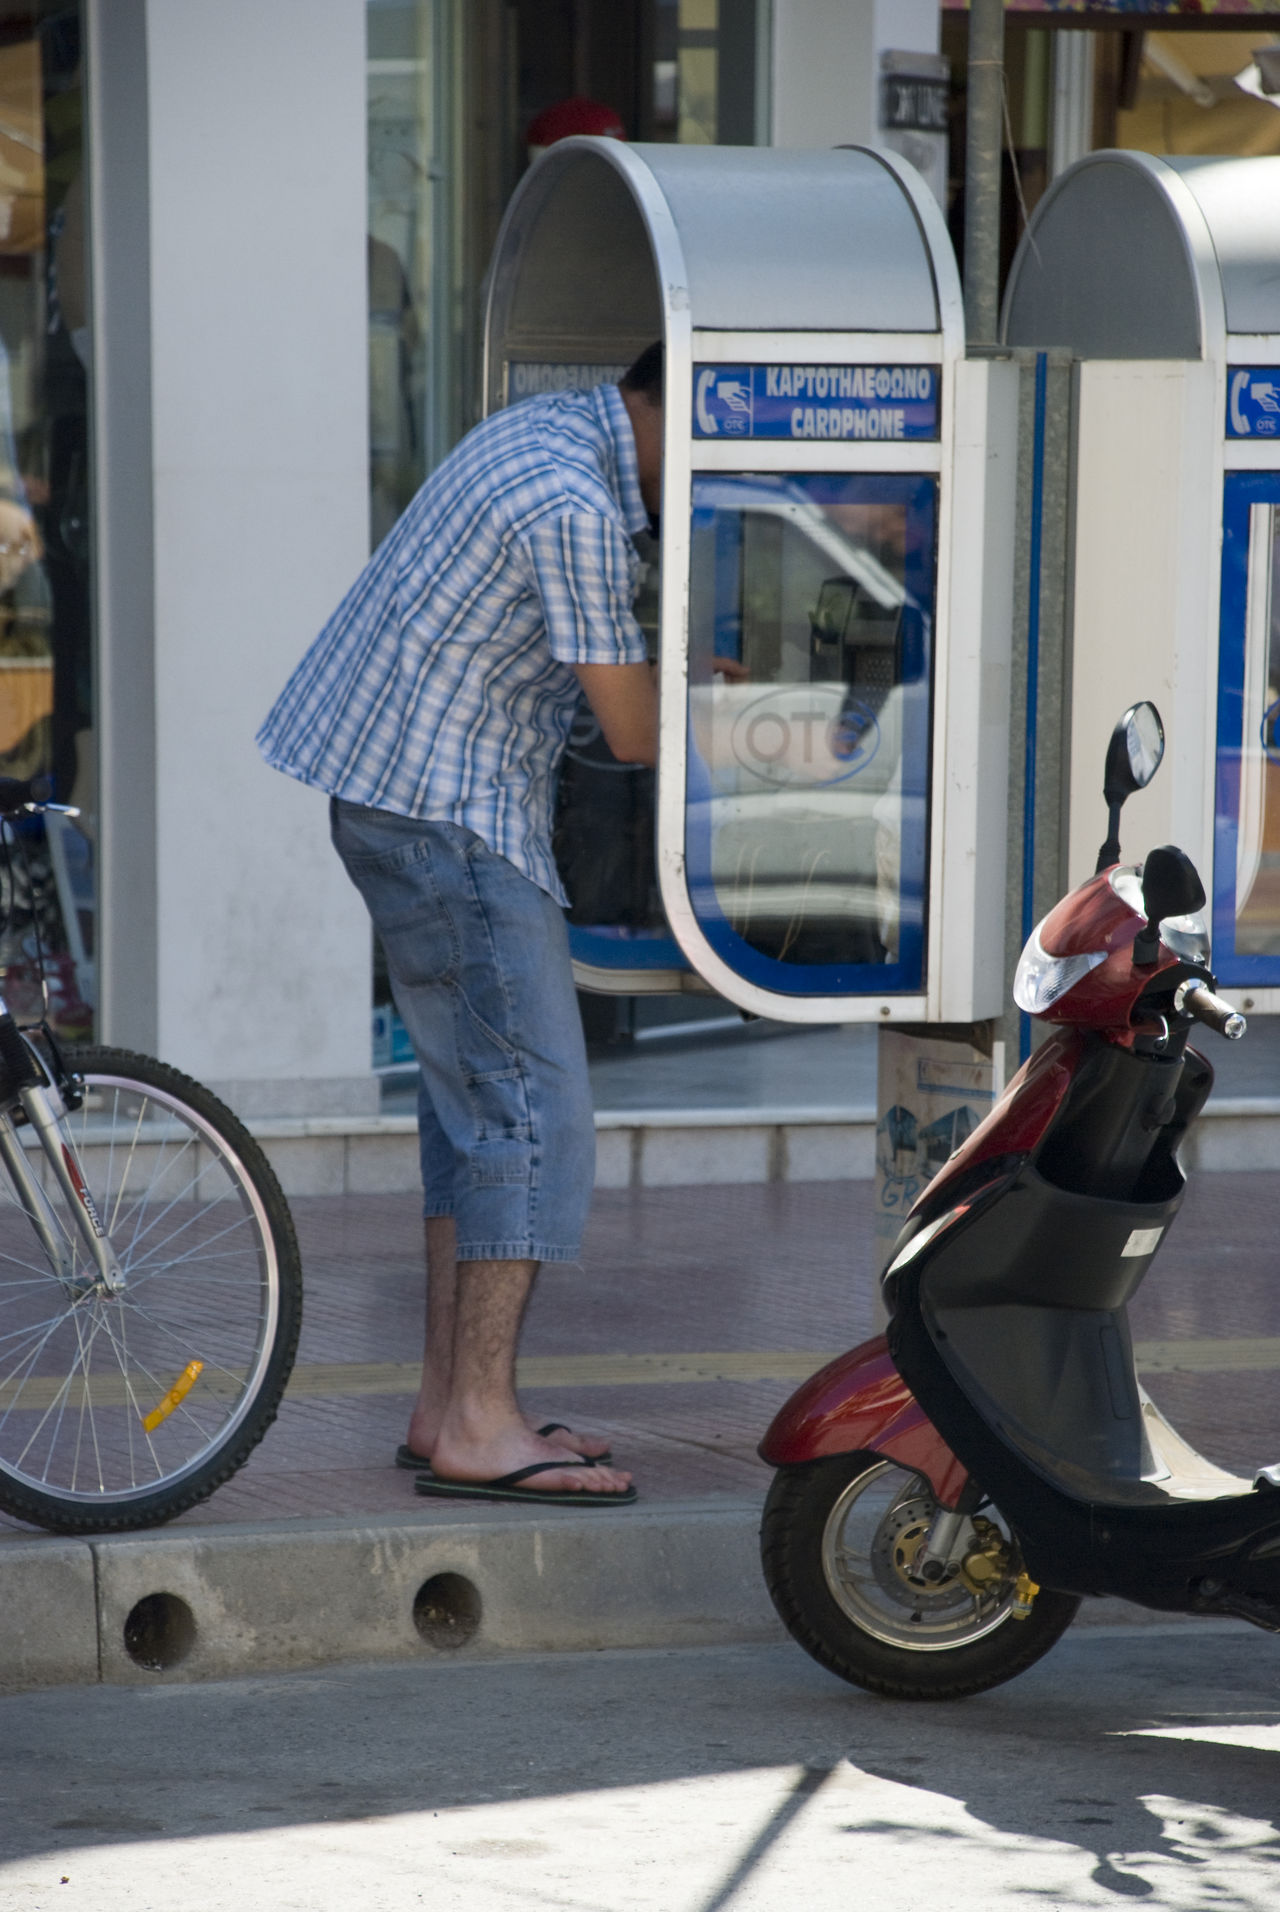 Adult Adults Only Bicycle Casual Clothing Crete Crete Greece Day Full Length Land Vehicle Mode Of Transport One Man Only One Person Open Outdoors People Phone Booth Public Transportation Summer Tall Tall - High Transportation